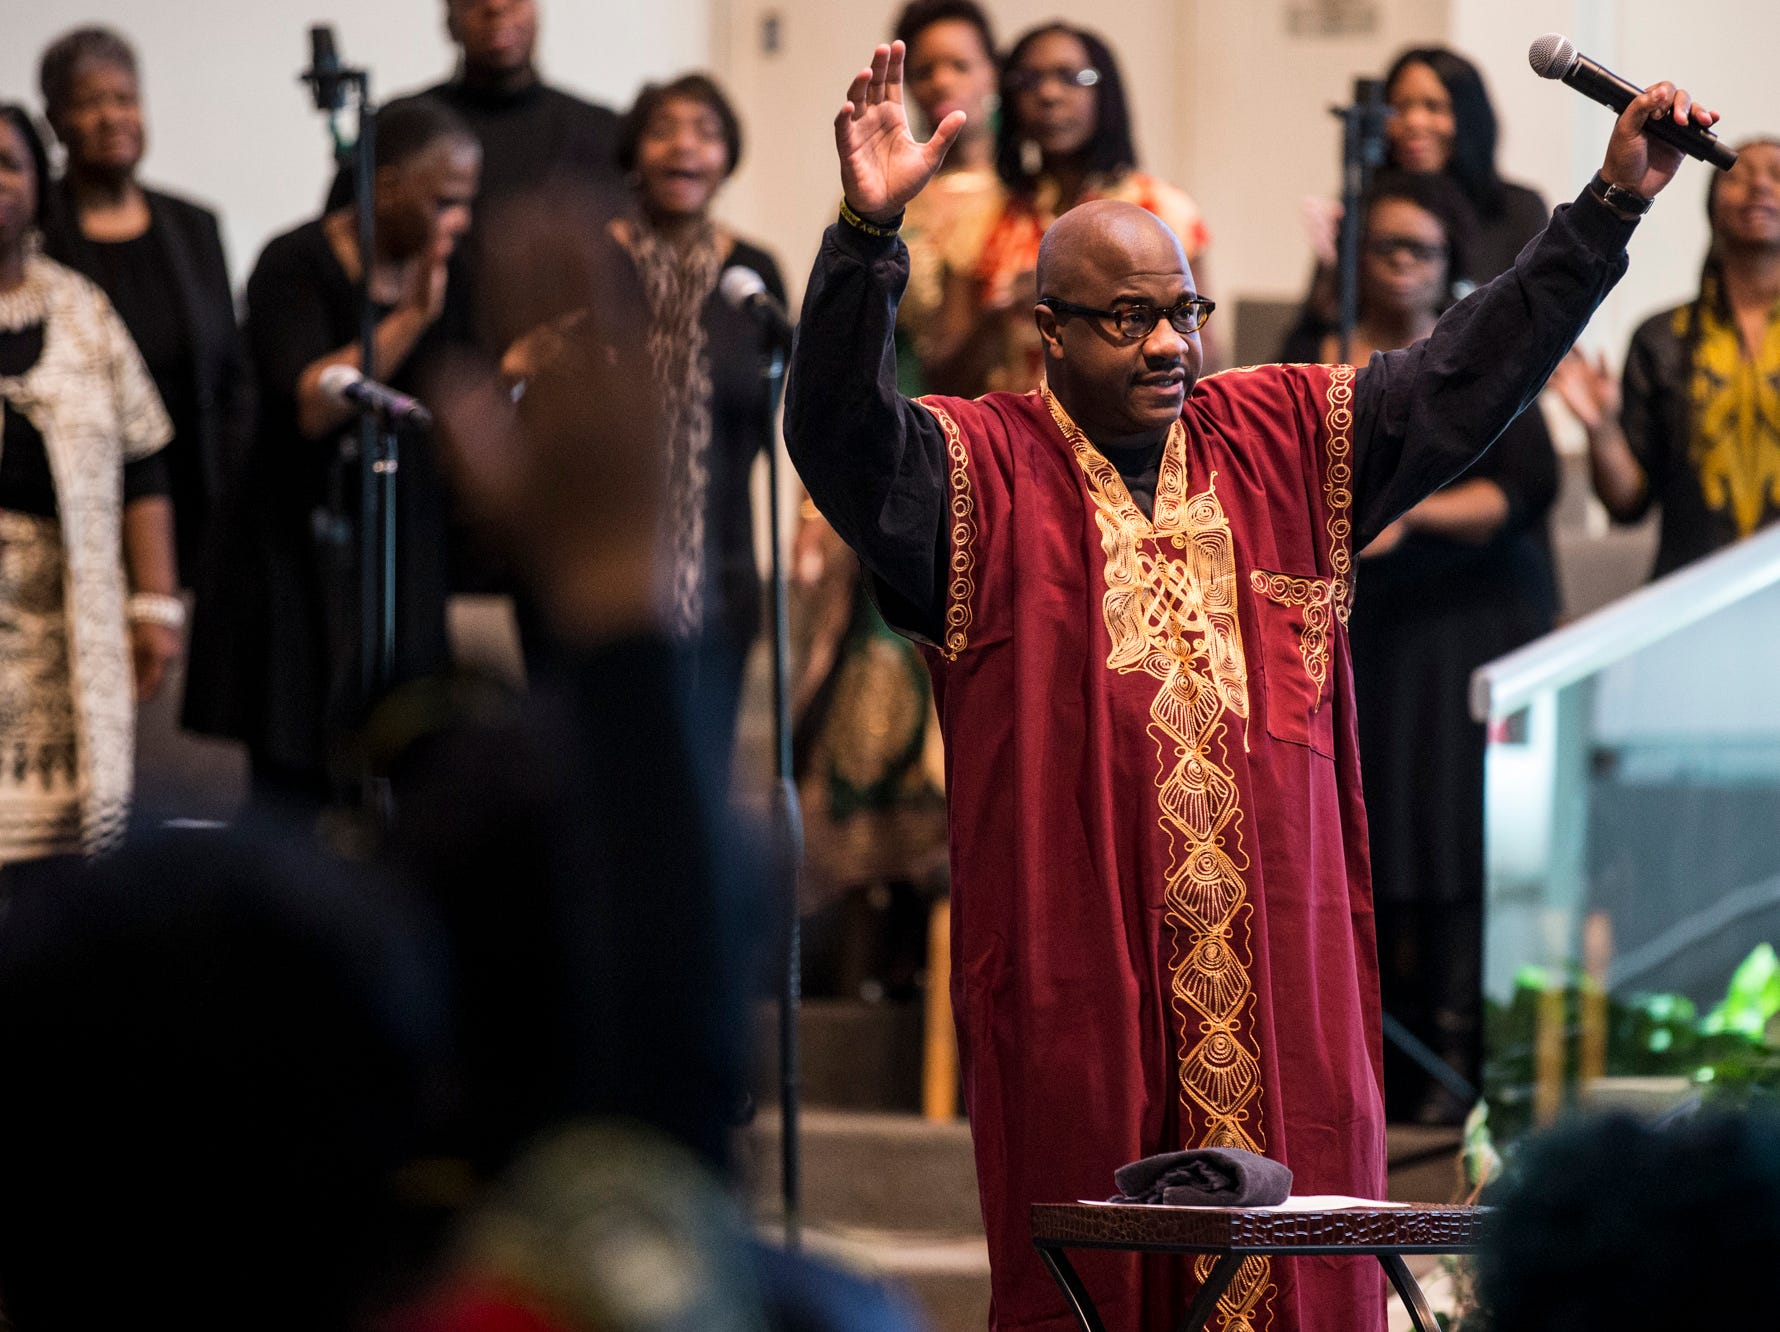 Pastor Terry Mackey raises his arms during the 7:30 a.m. service on Feb. 24, 2019, at Pilgrim Rest Baptist Church in Phoenix. Mackey was appointed to replace the late Bishop Alexis Thomas.